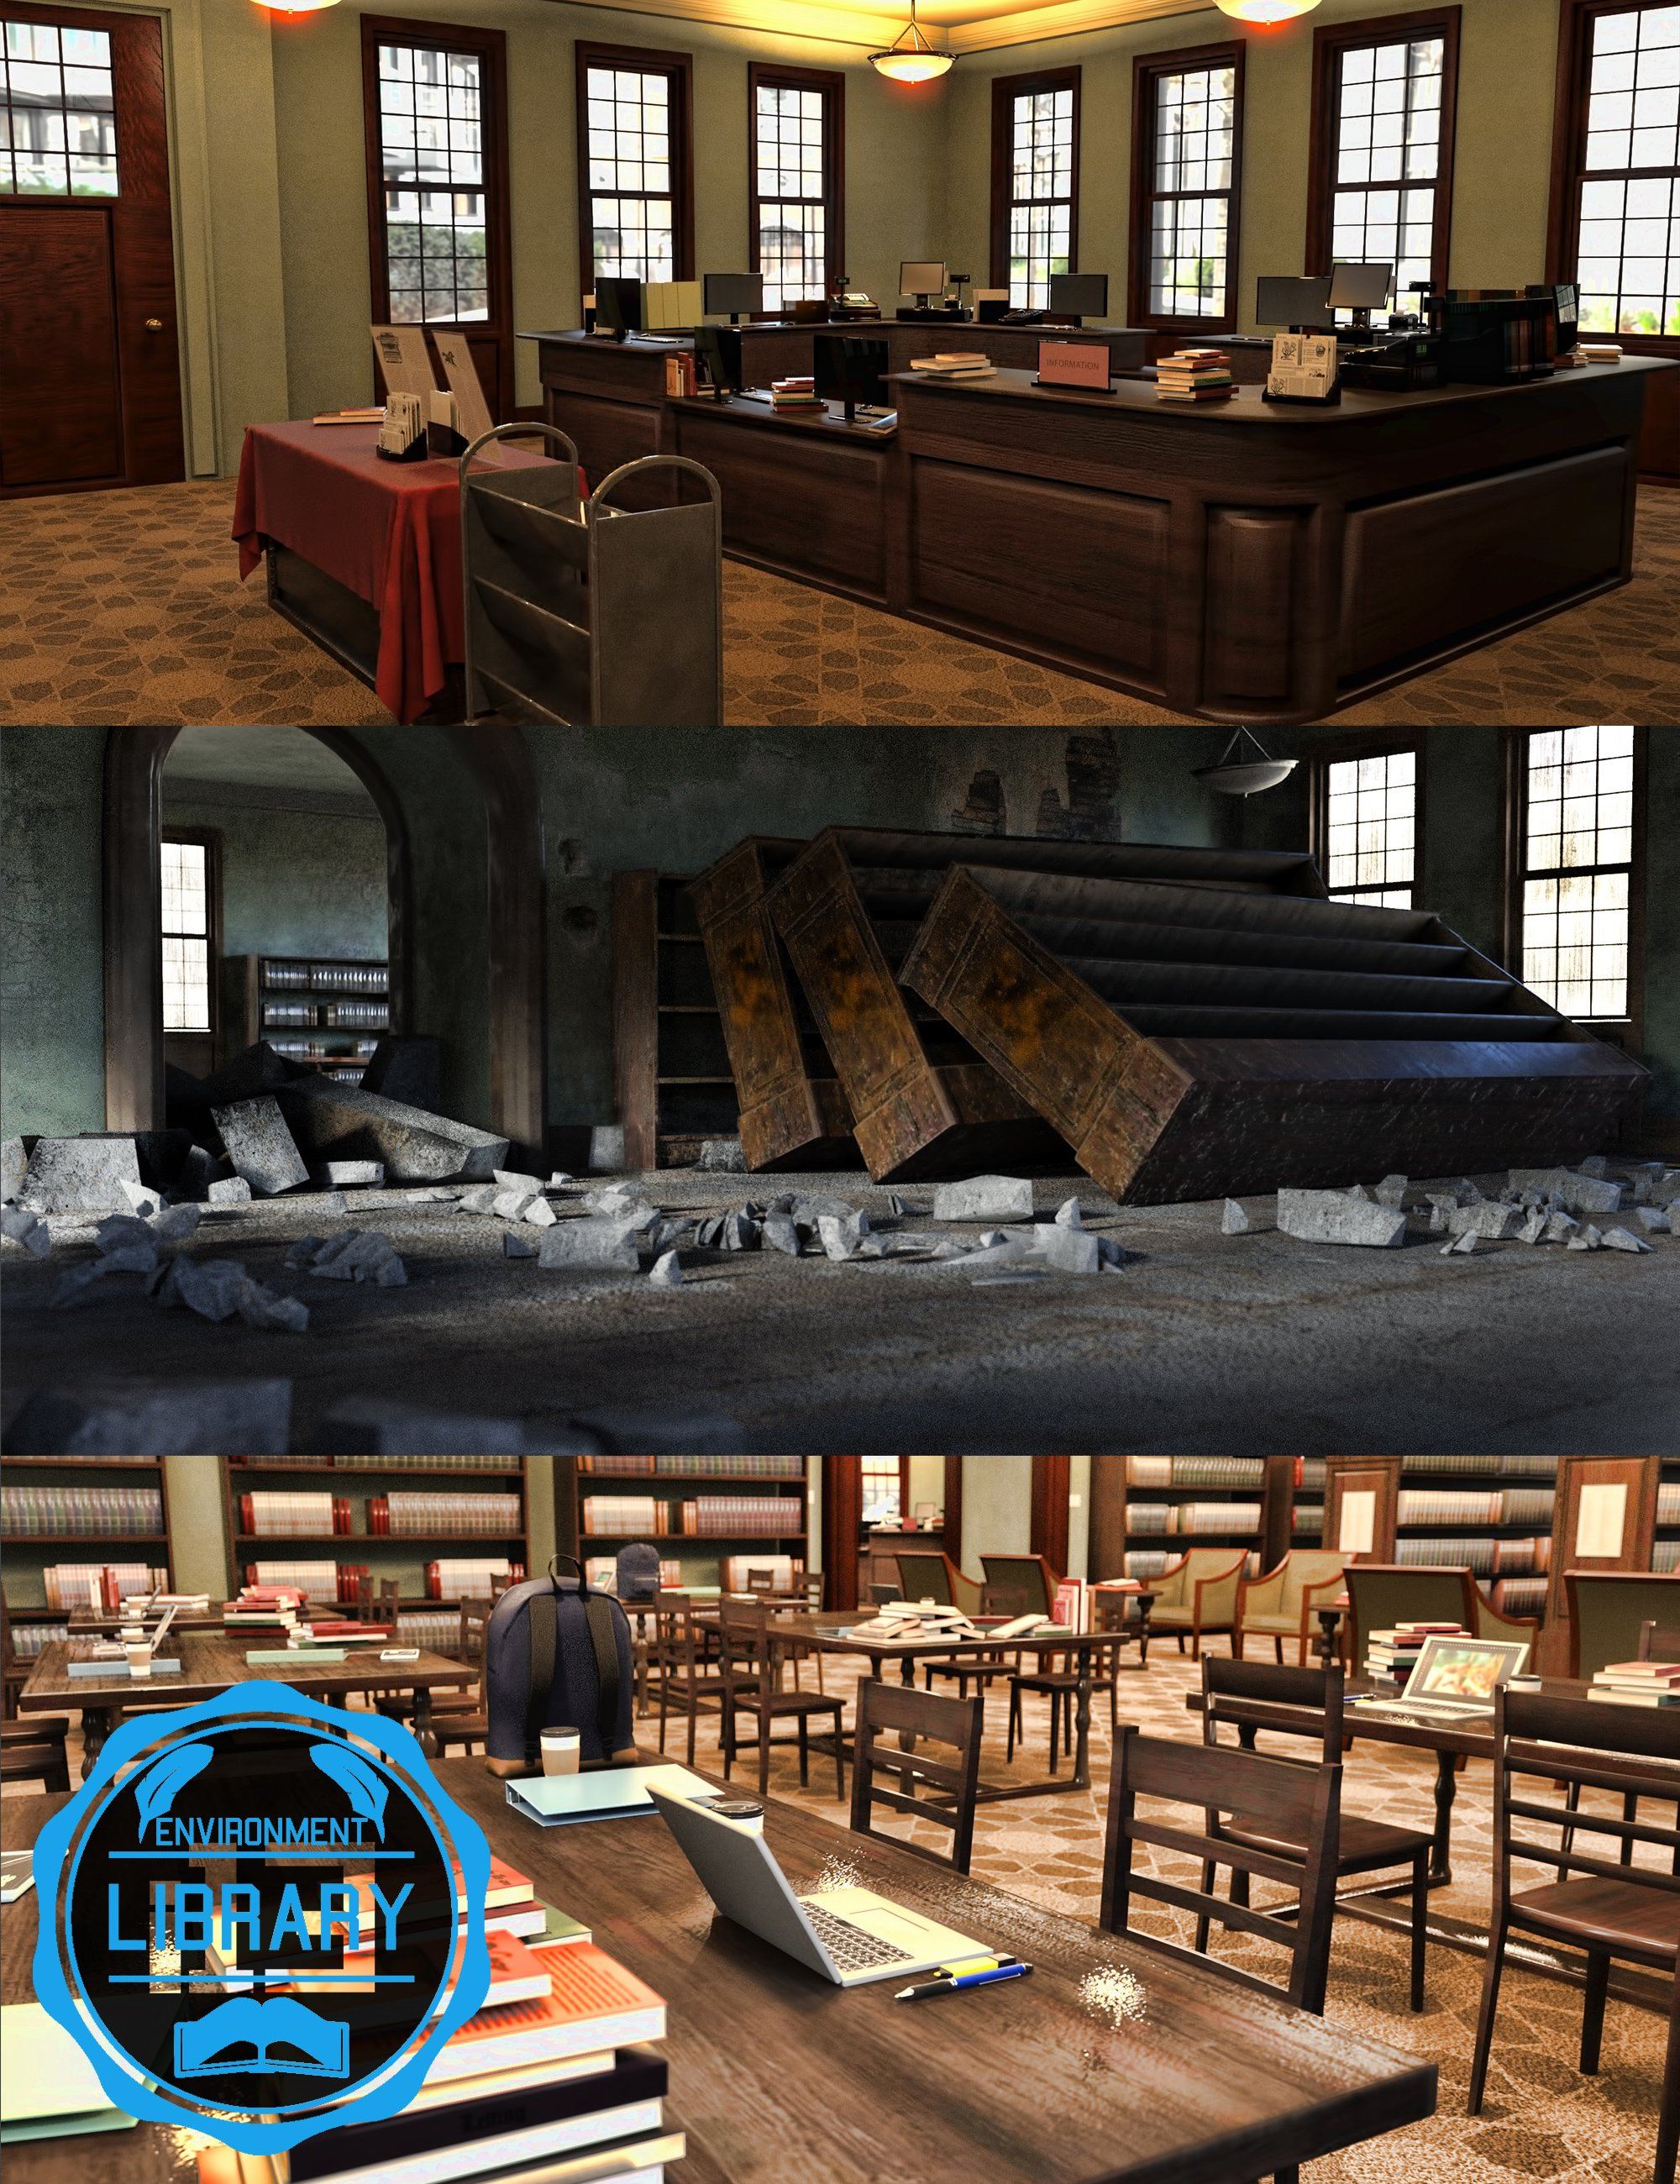 i13 Library Environment by: ironman13, 3D Models by Daz 3D